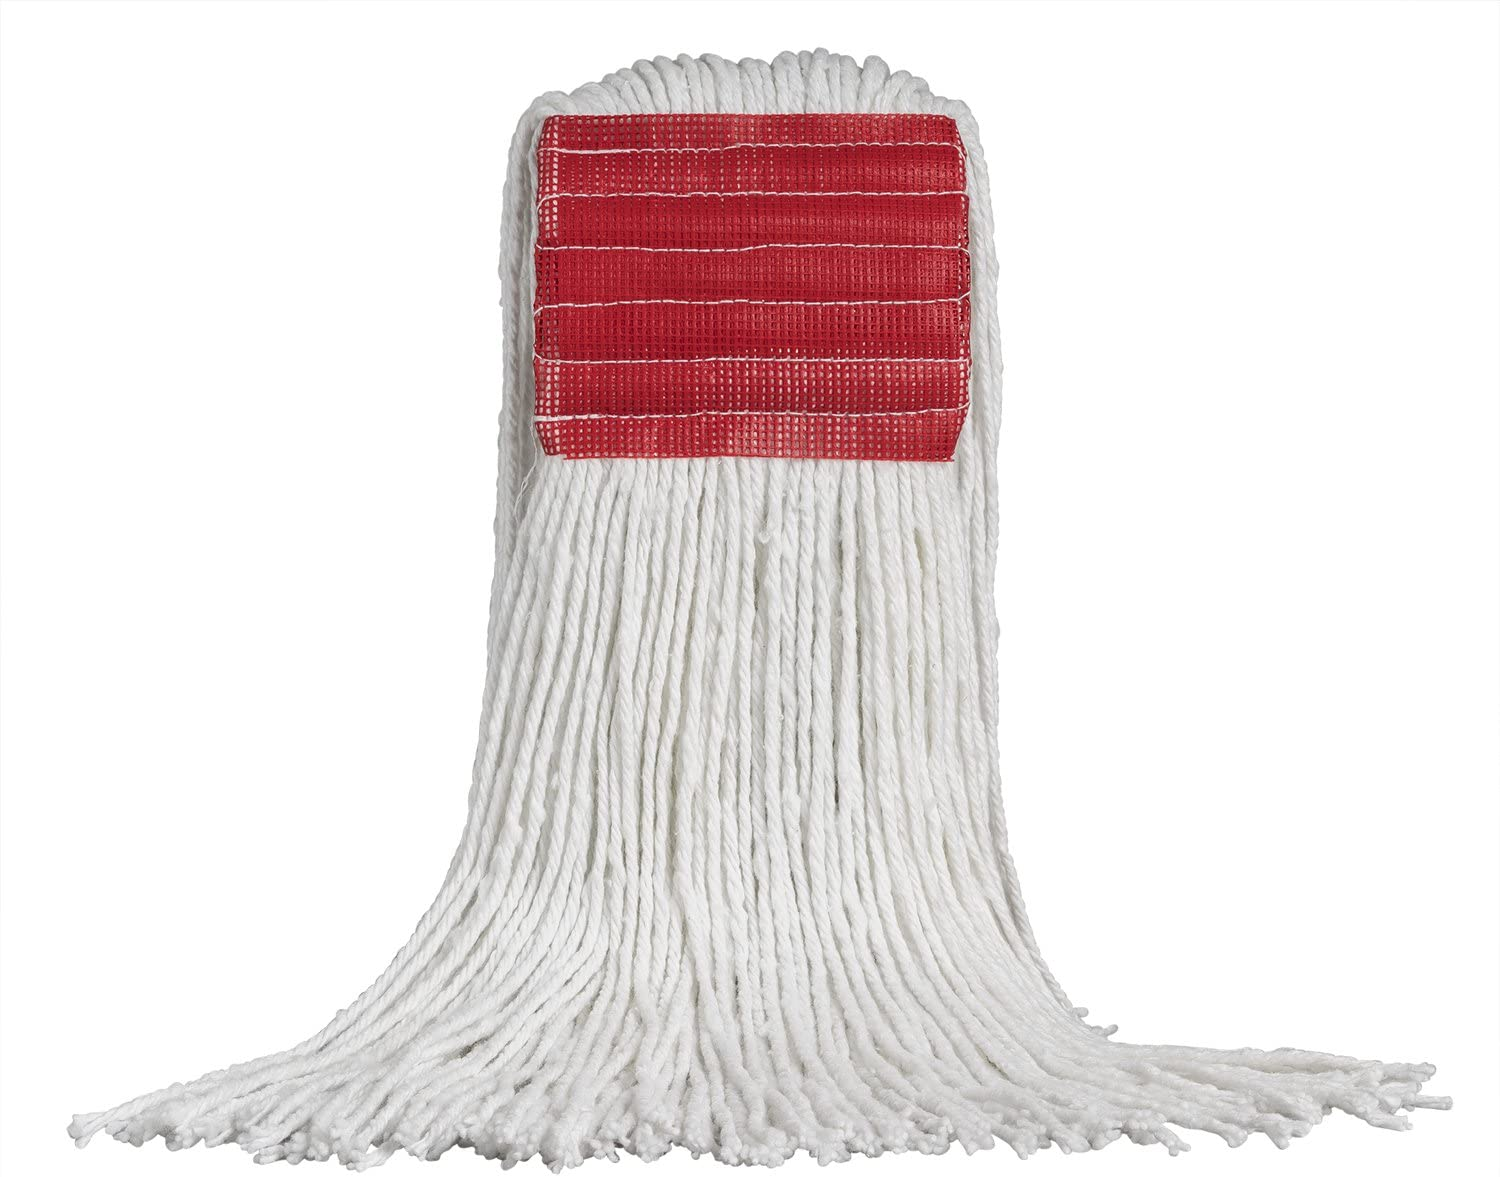 M2 Professional SYNRAY Rayon Cash special price 12oz Cut-End Mop Head Sales of SALE items from new works Replacement